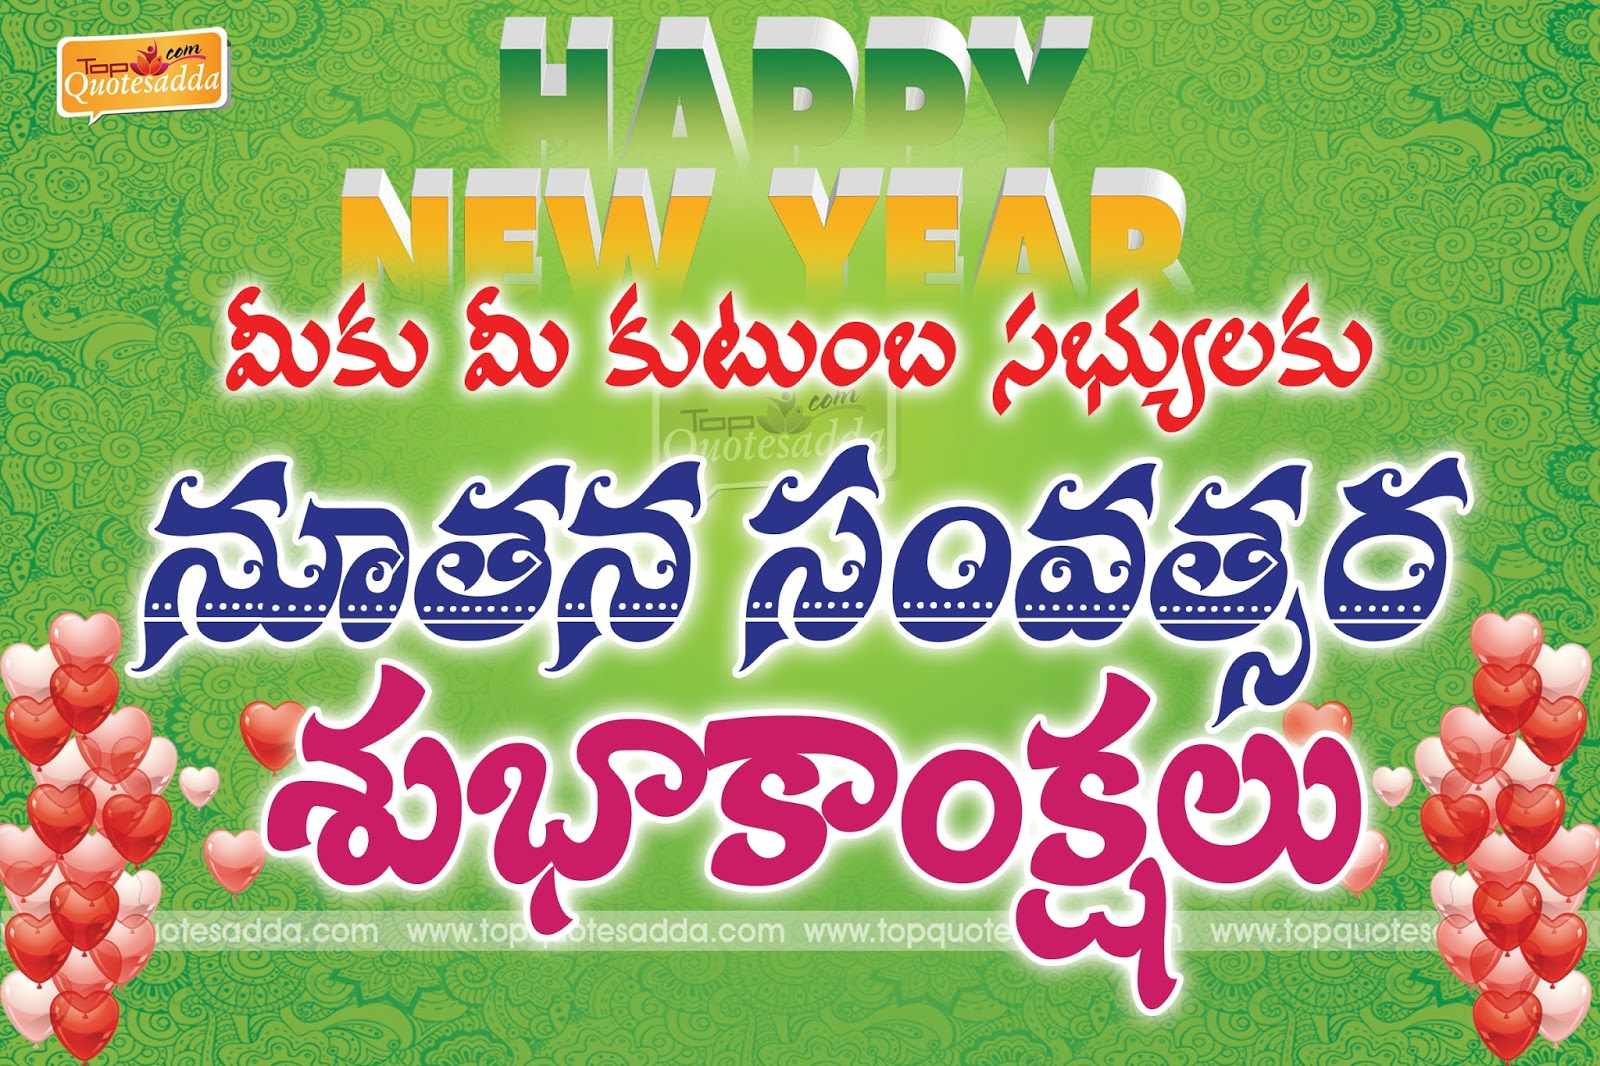 happy new year telugu greeting cards and quotes | Topquotesadda ...